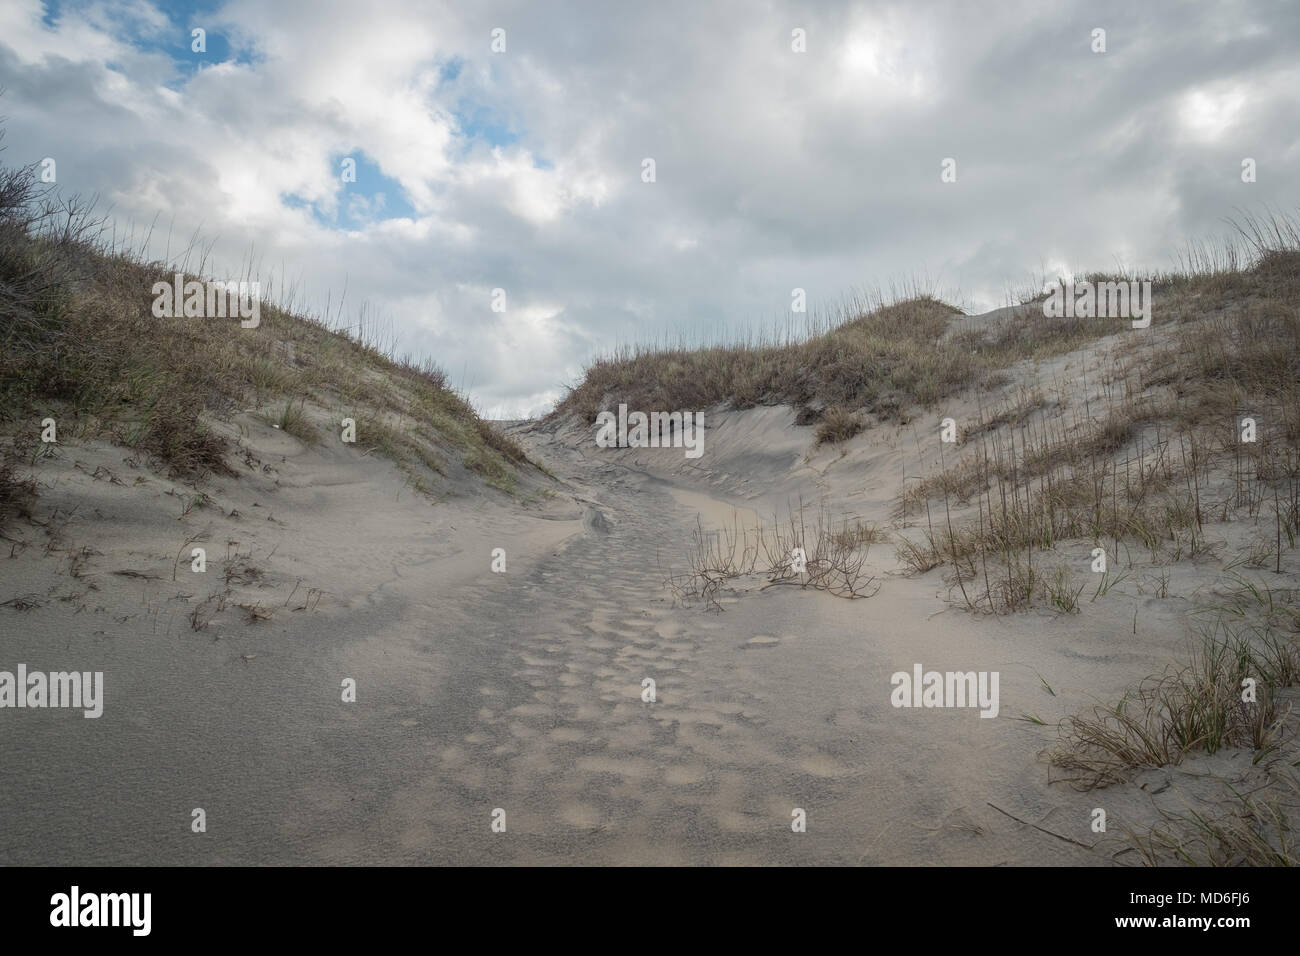 The beach in the Outer Banks, North Carolina. Stock Photo